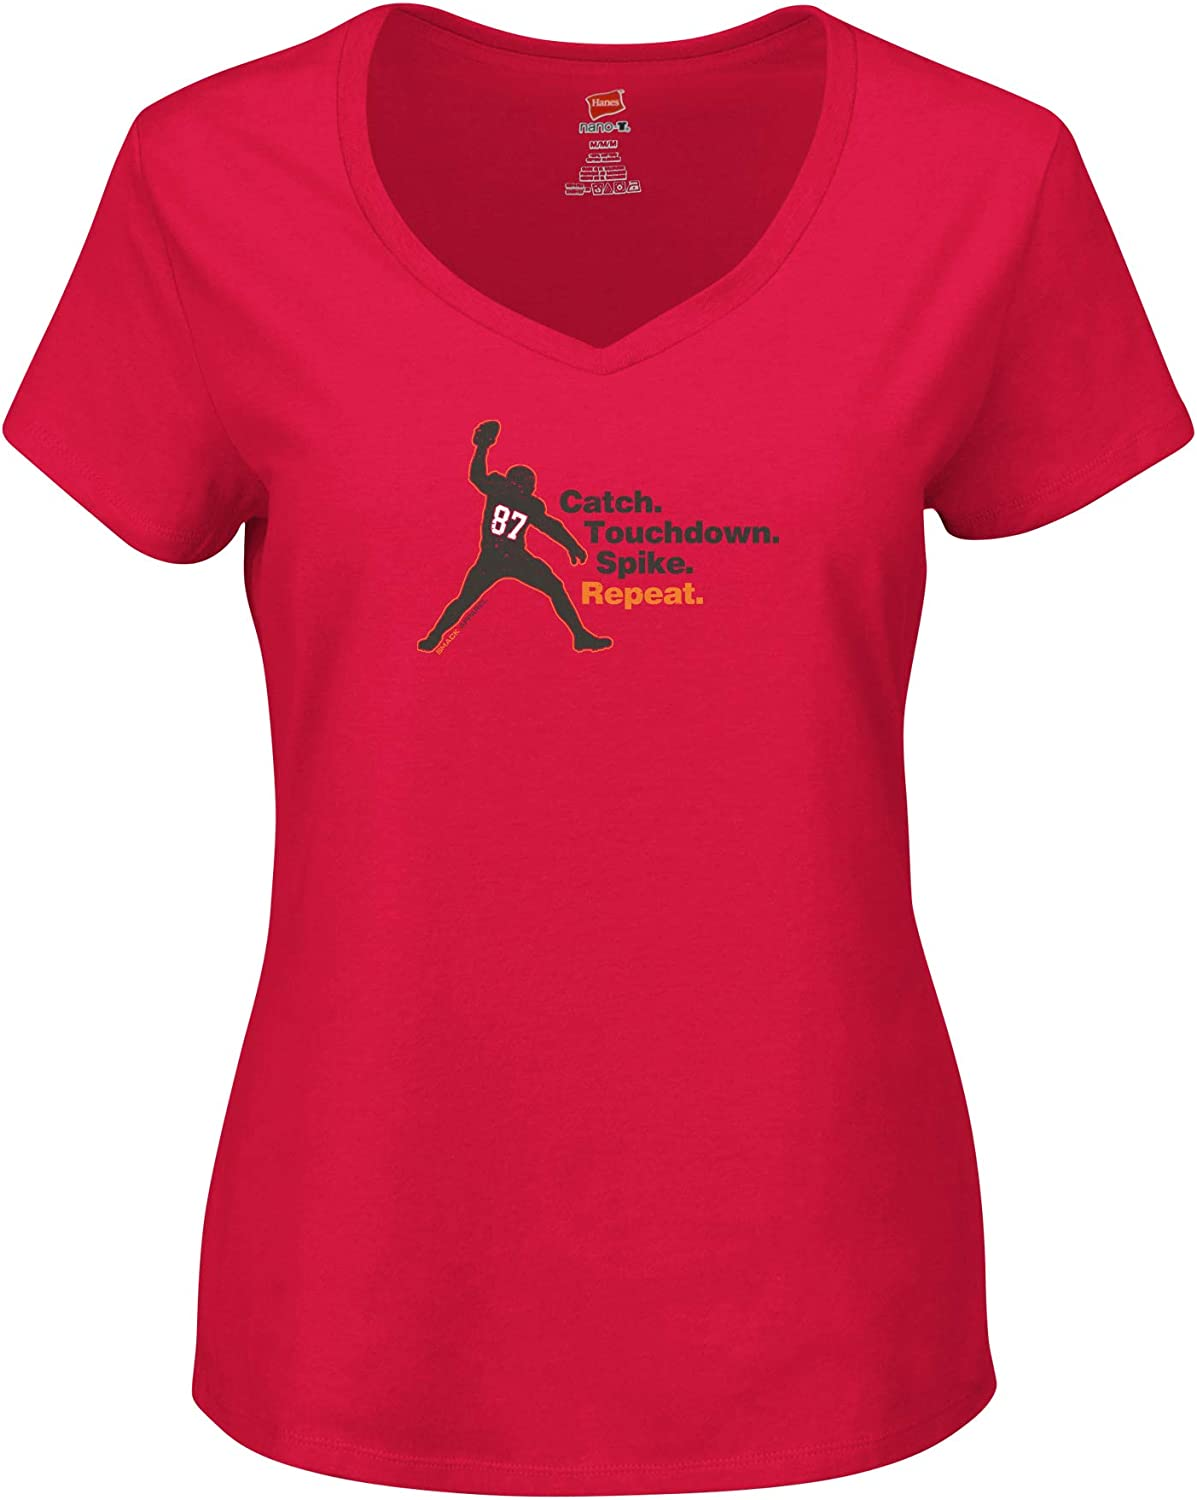 Repeat Smack Apparel Tampa Bay Football Fans Touchdown Catch Red Womens V-Neck or Racerback Sm-2X Spike